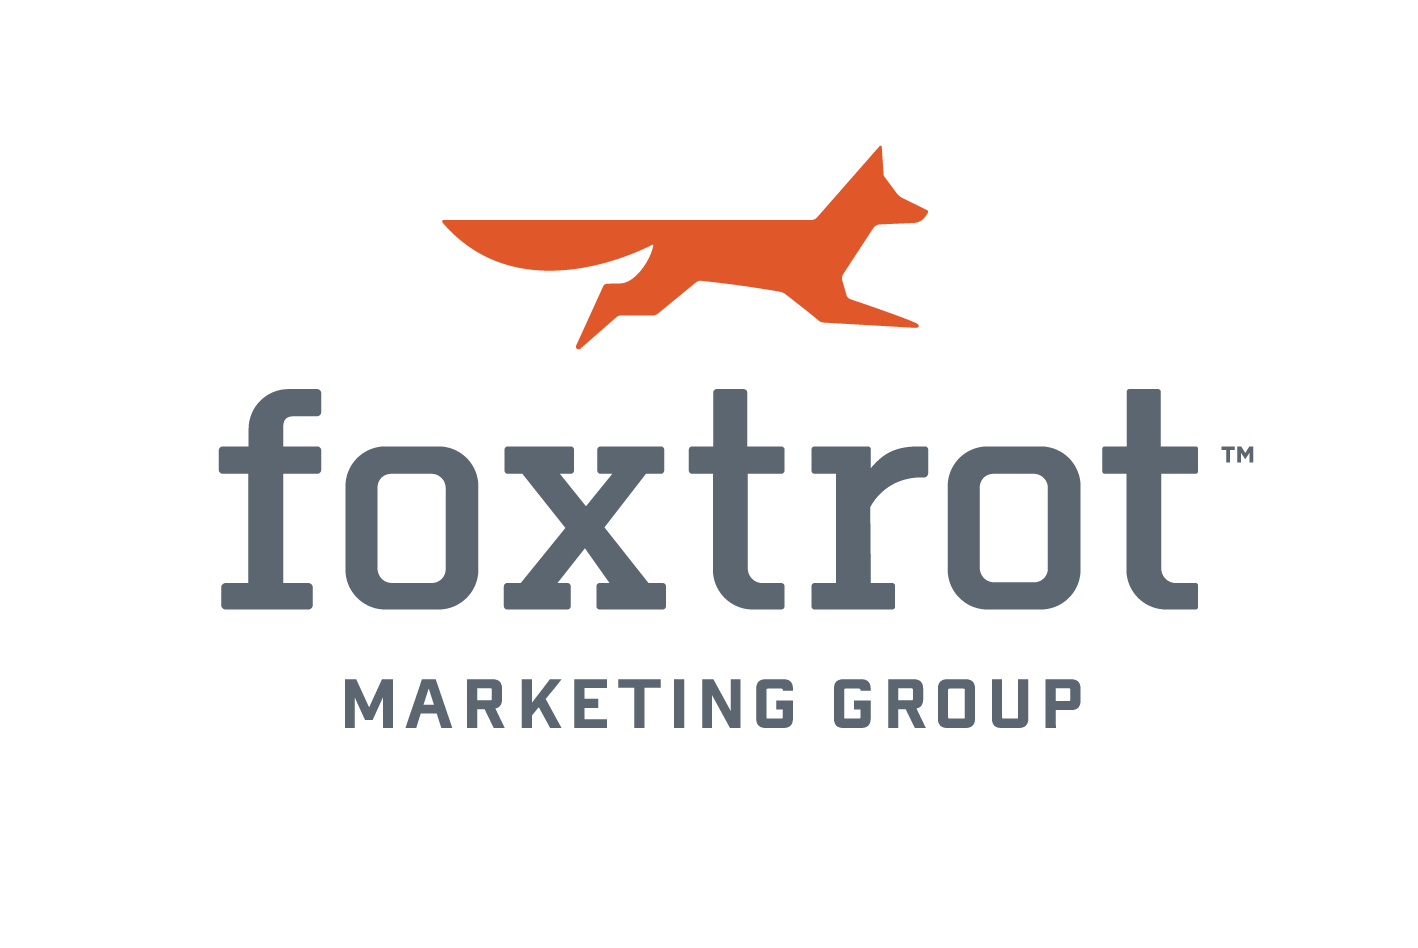 Foxtrot Marketing Group Logo